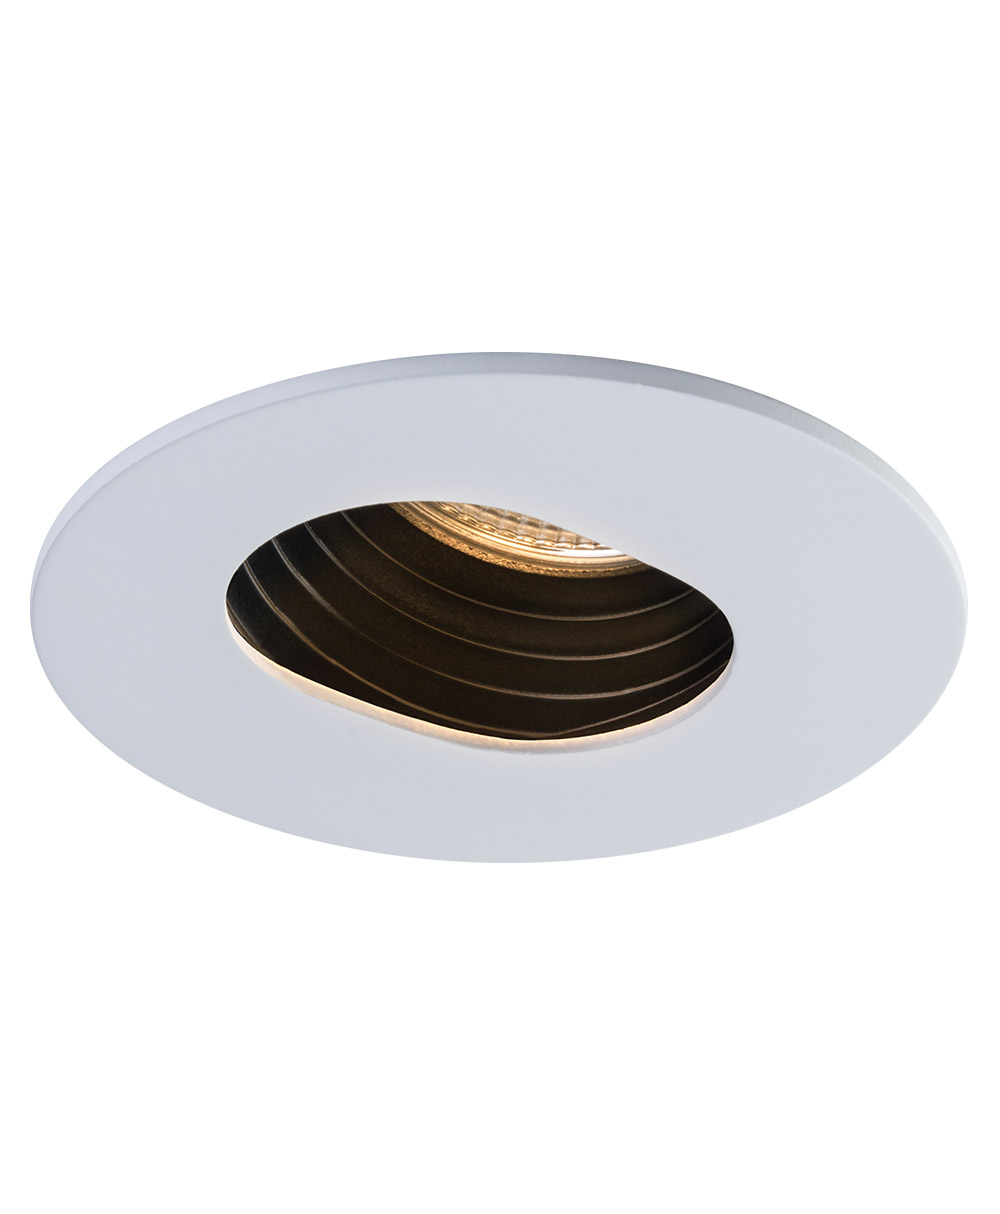 SIGMA 2 Round Slot LED Fixture with Stepped Baffle